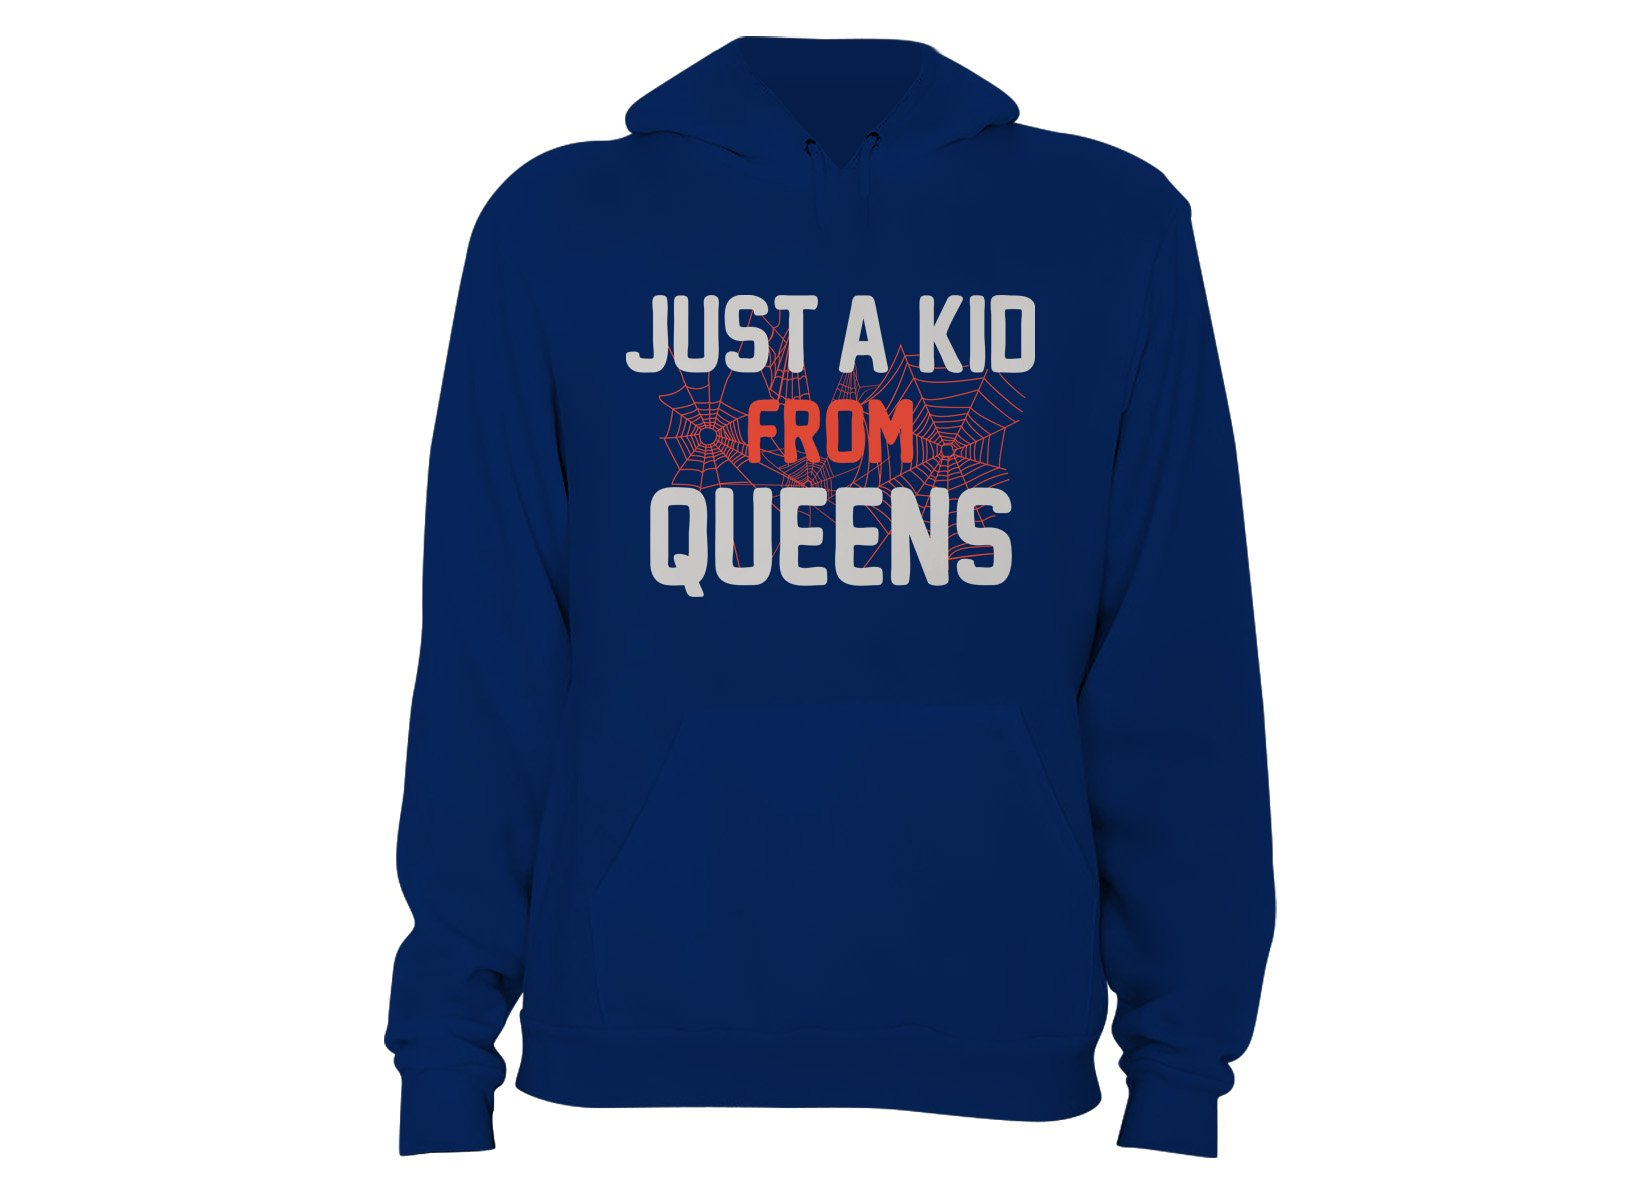 Just A Kid From Queens on Hoodie